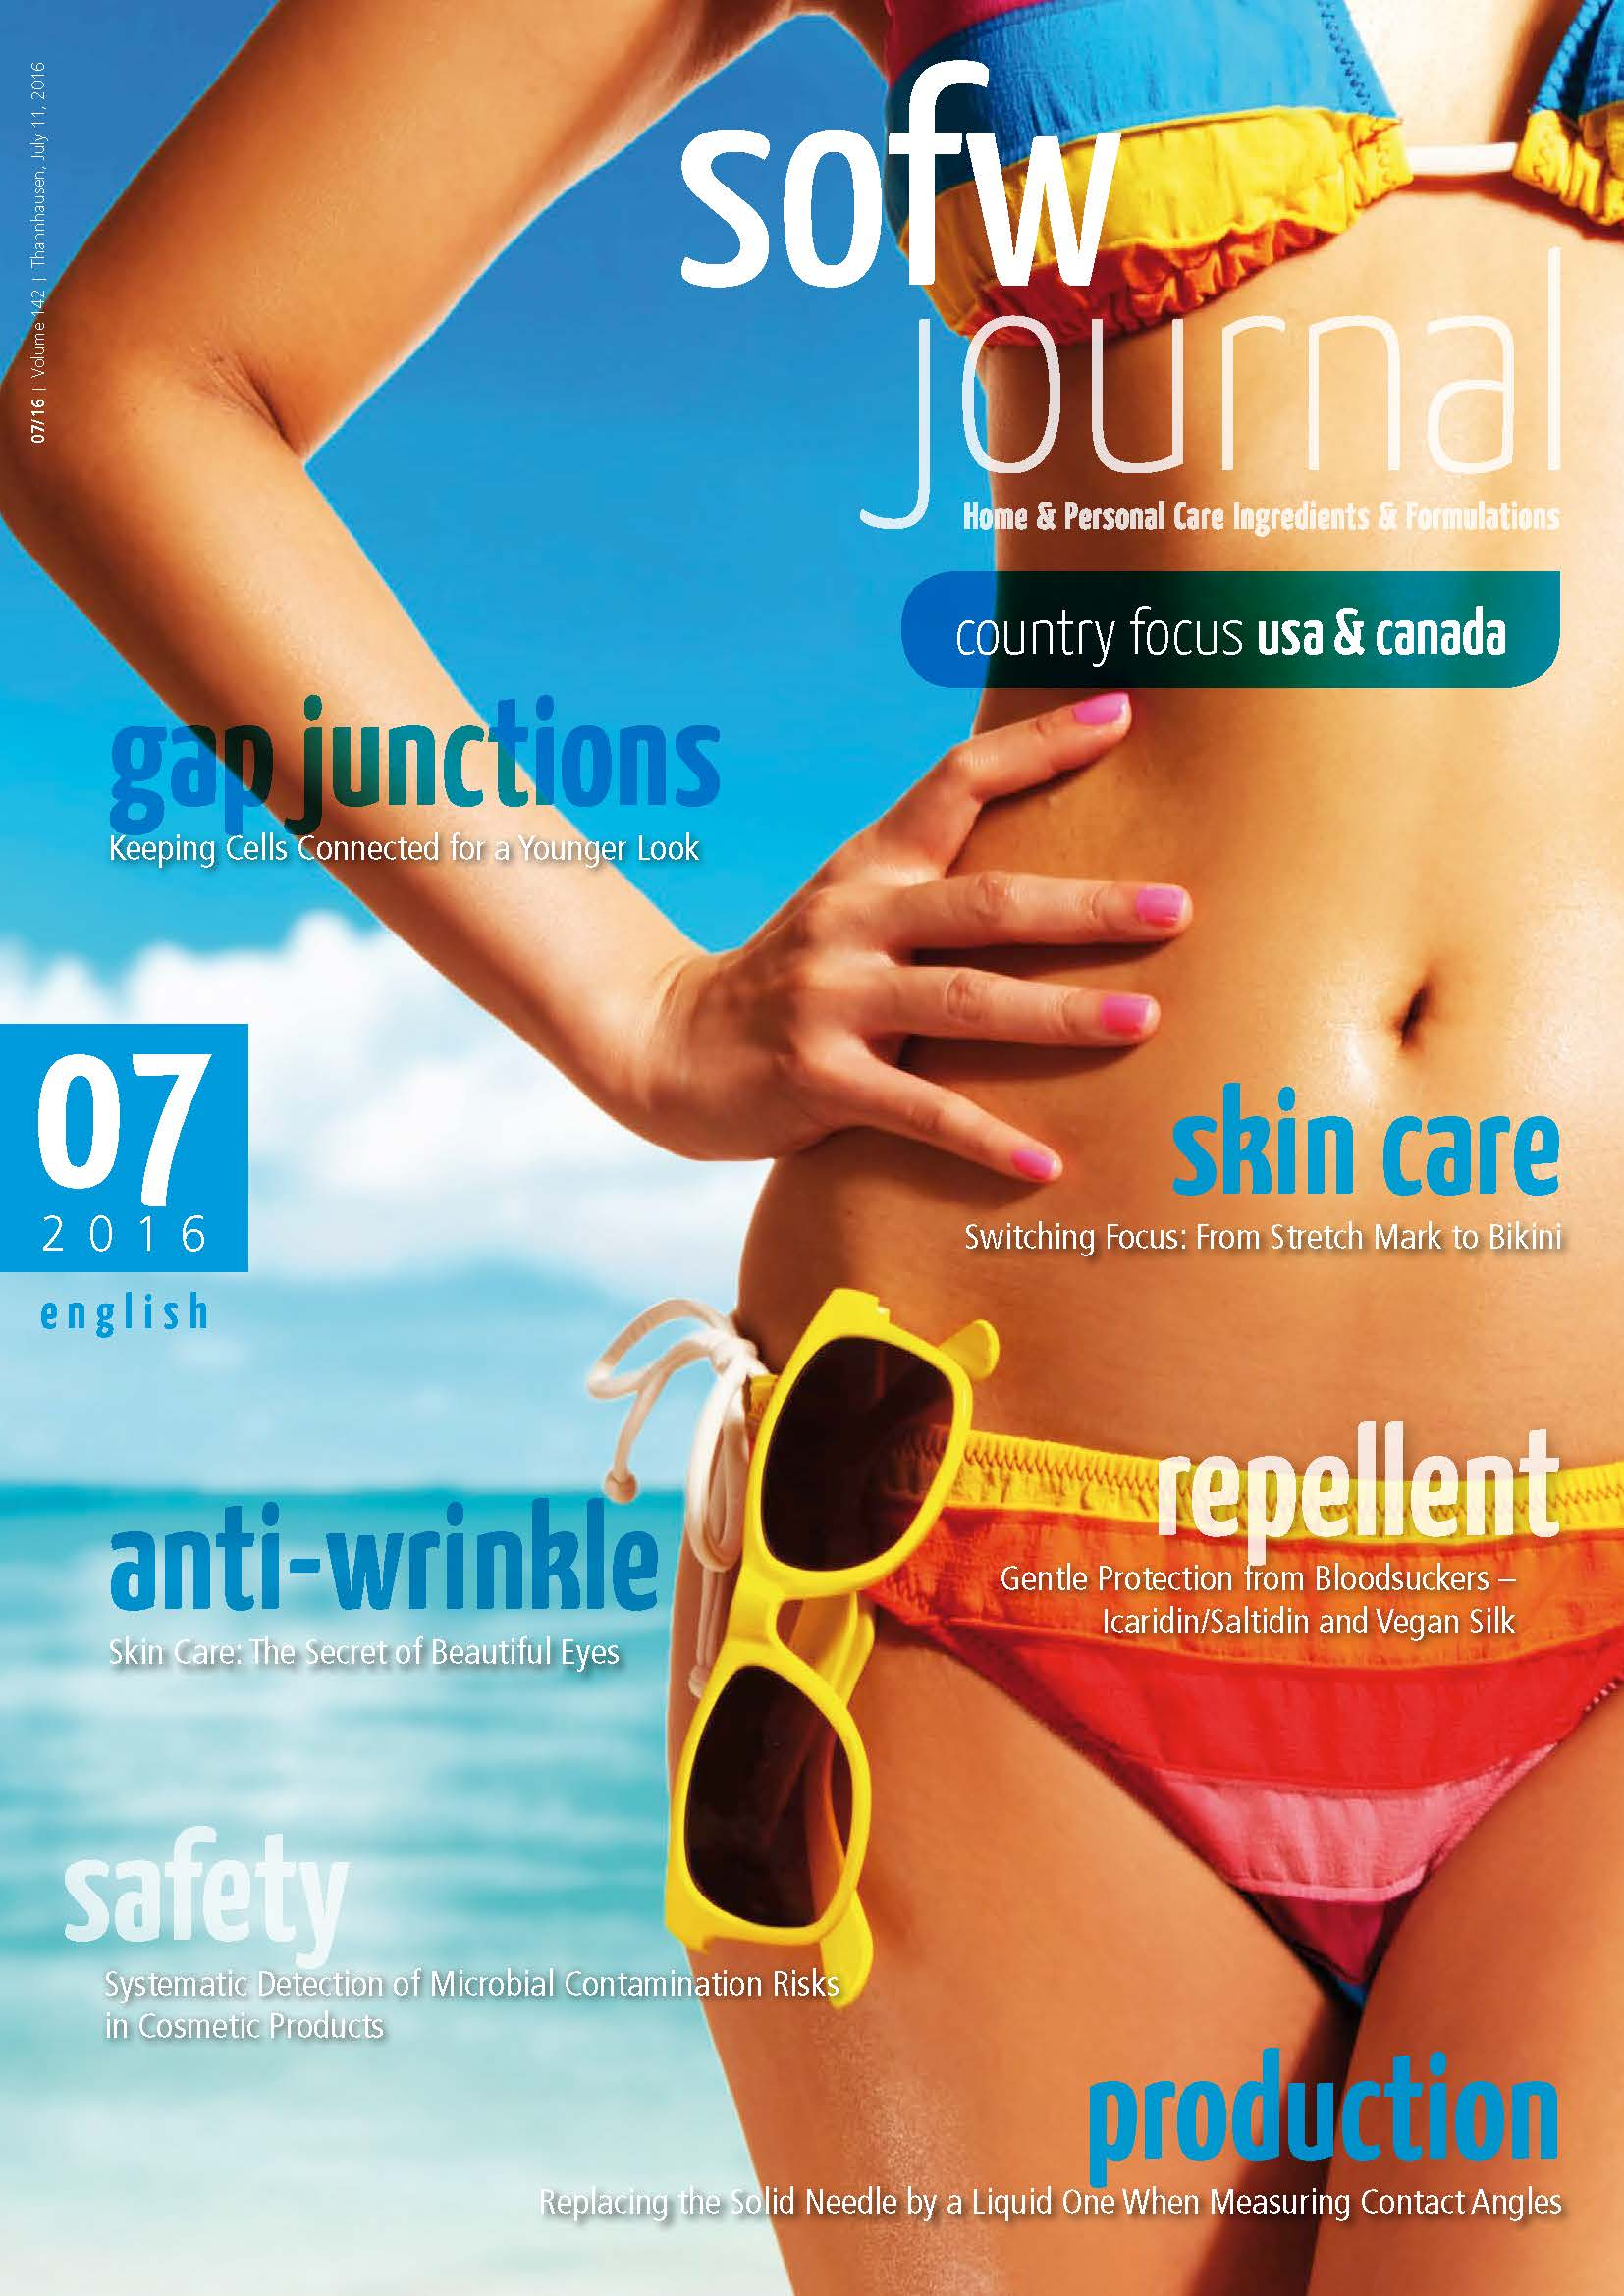 sofwjournal_en_2016_07_cover